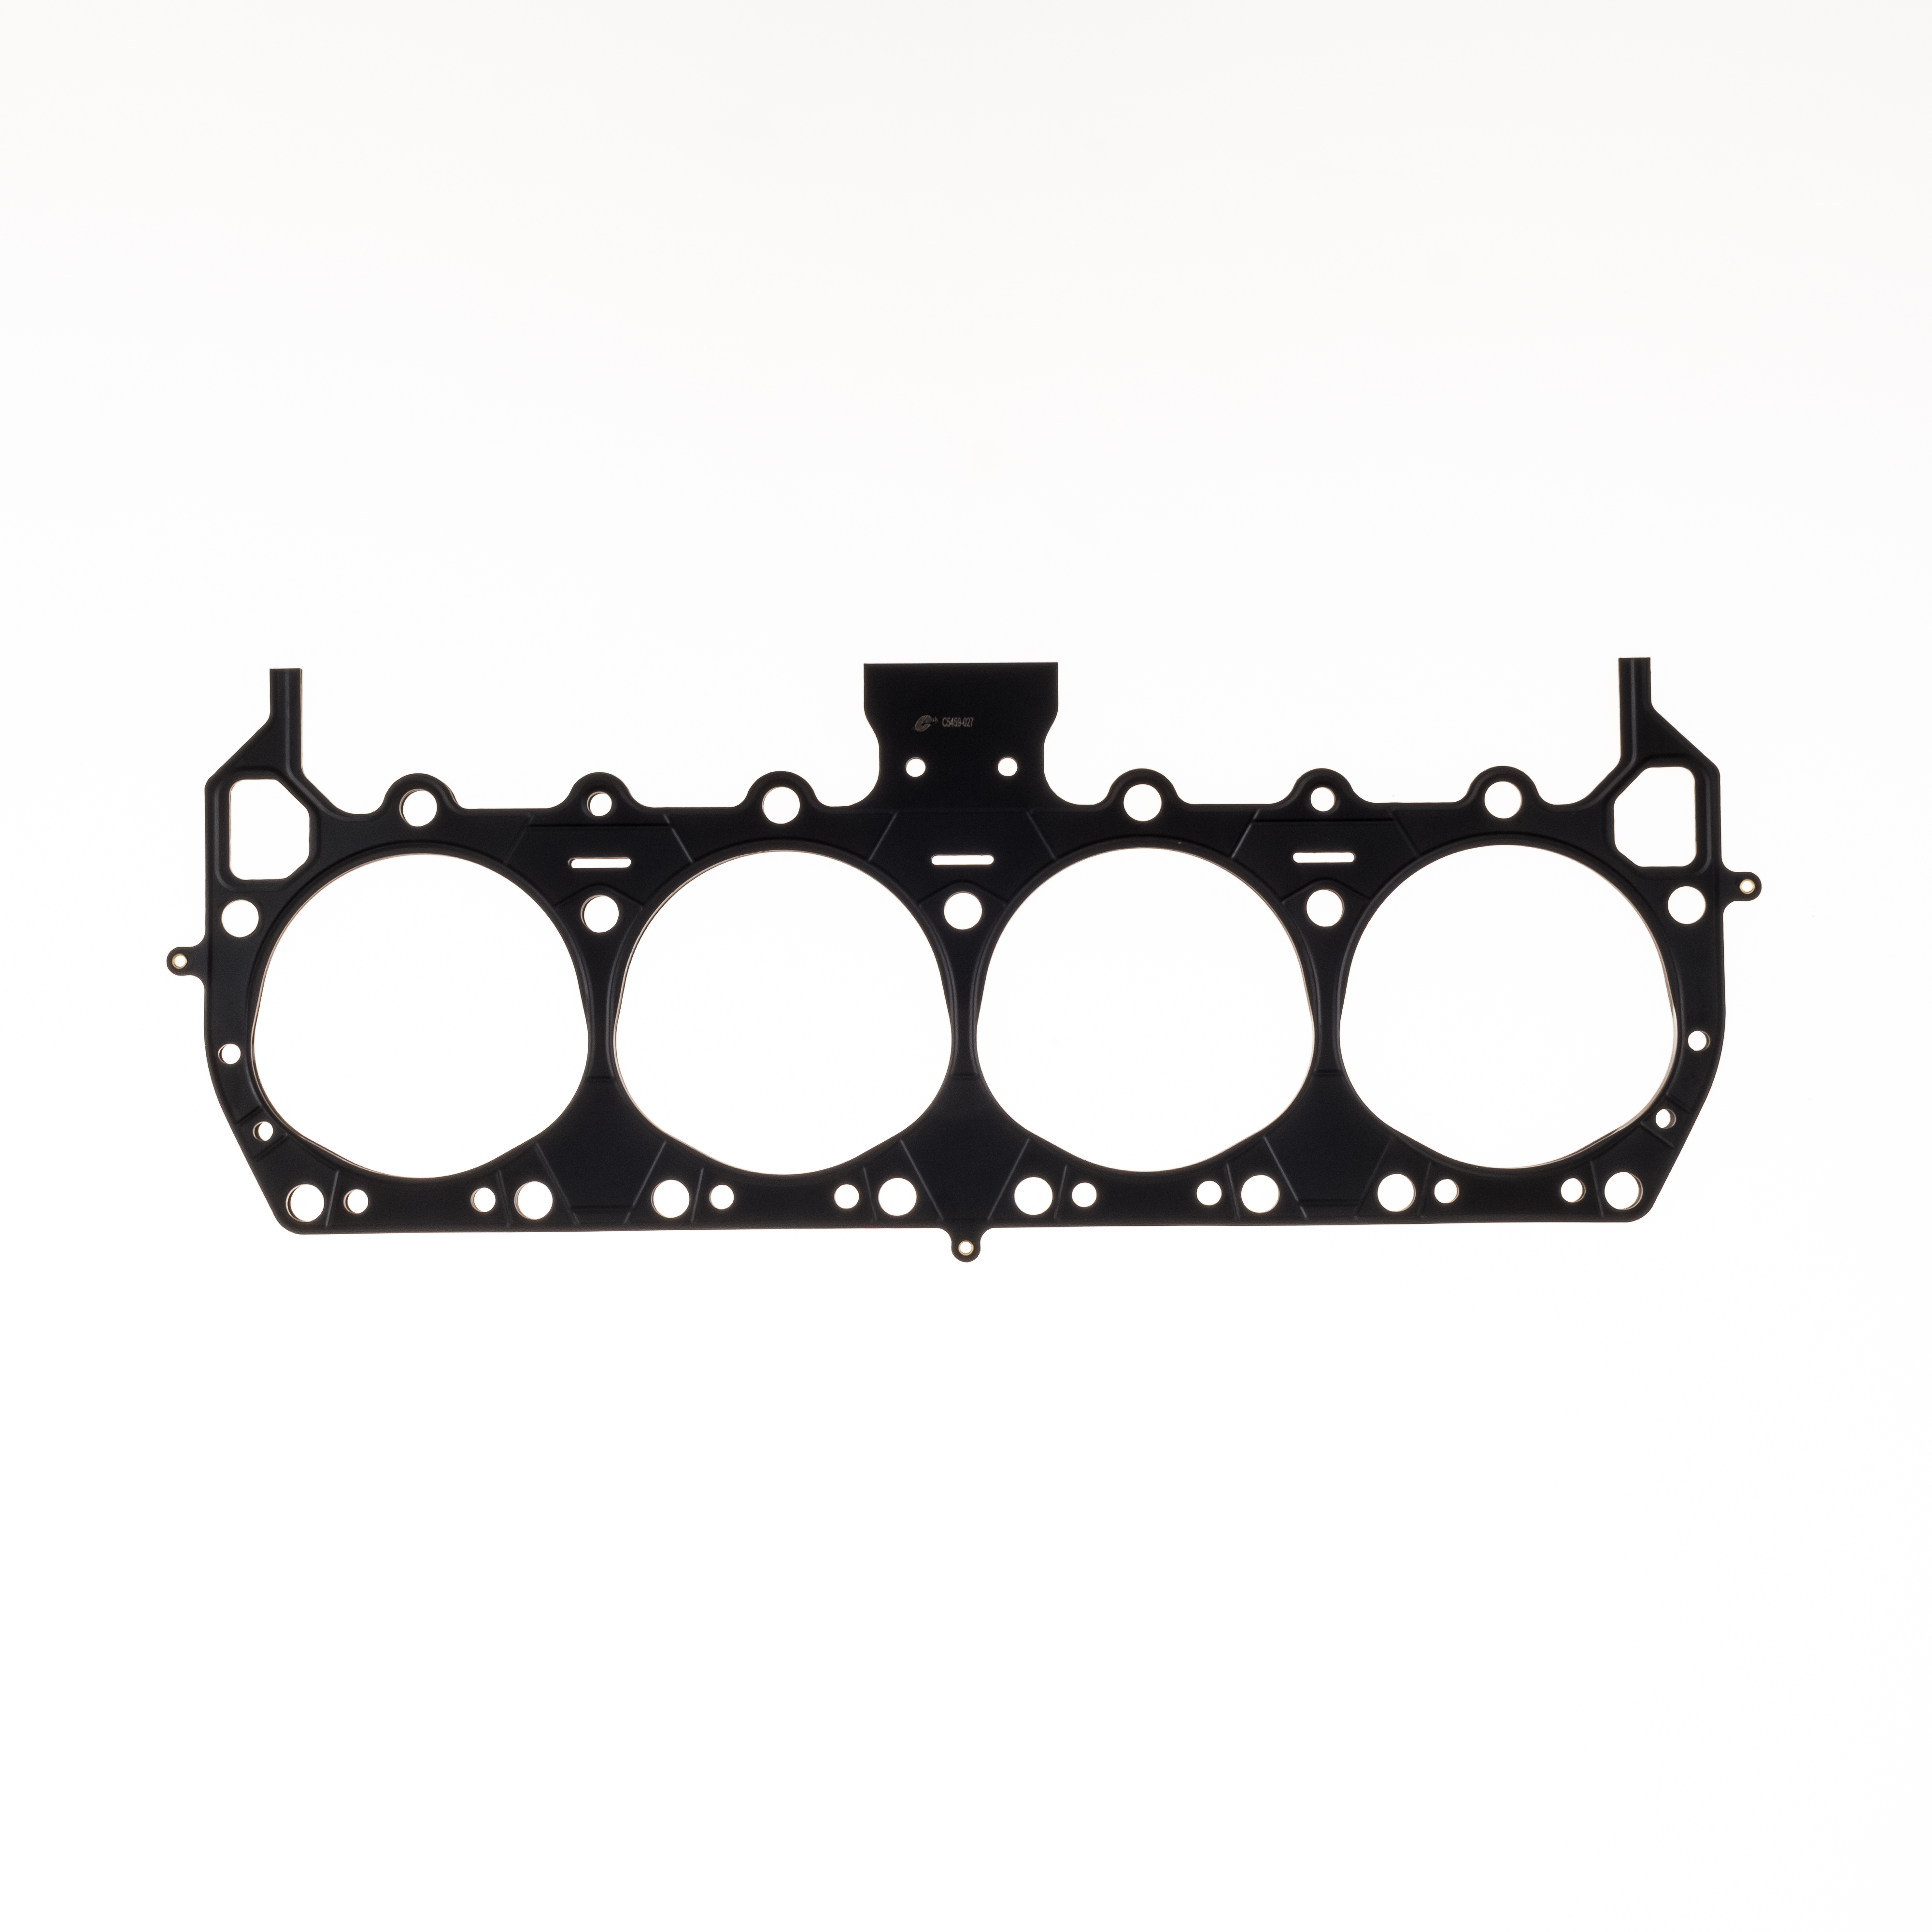 Chrysler B Rb V8 027 Mls Cylinder Head Gasket 4 250